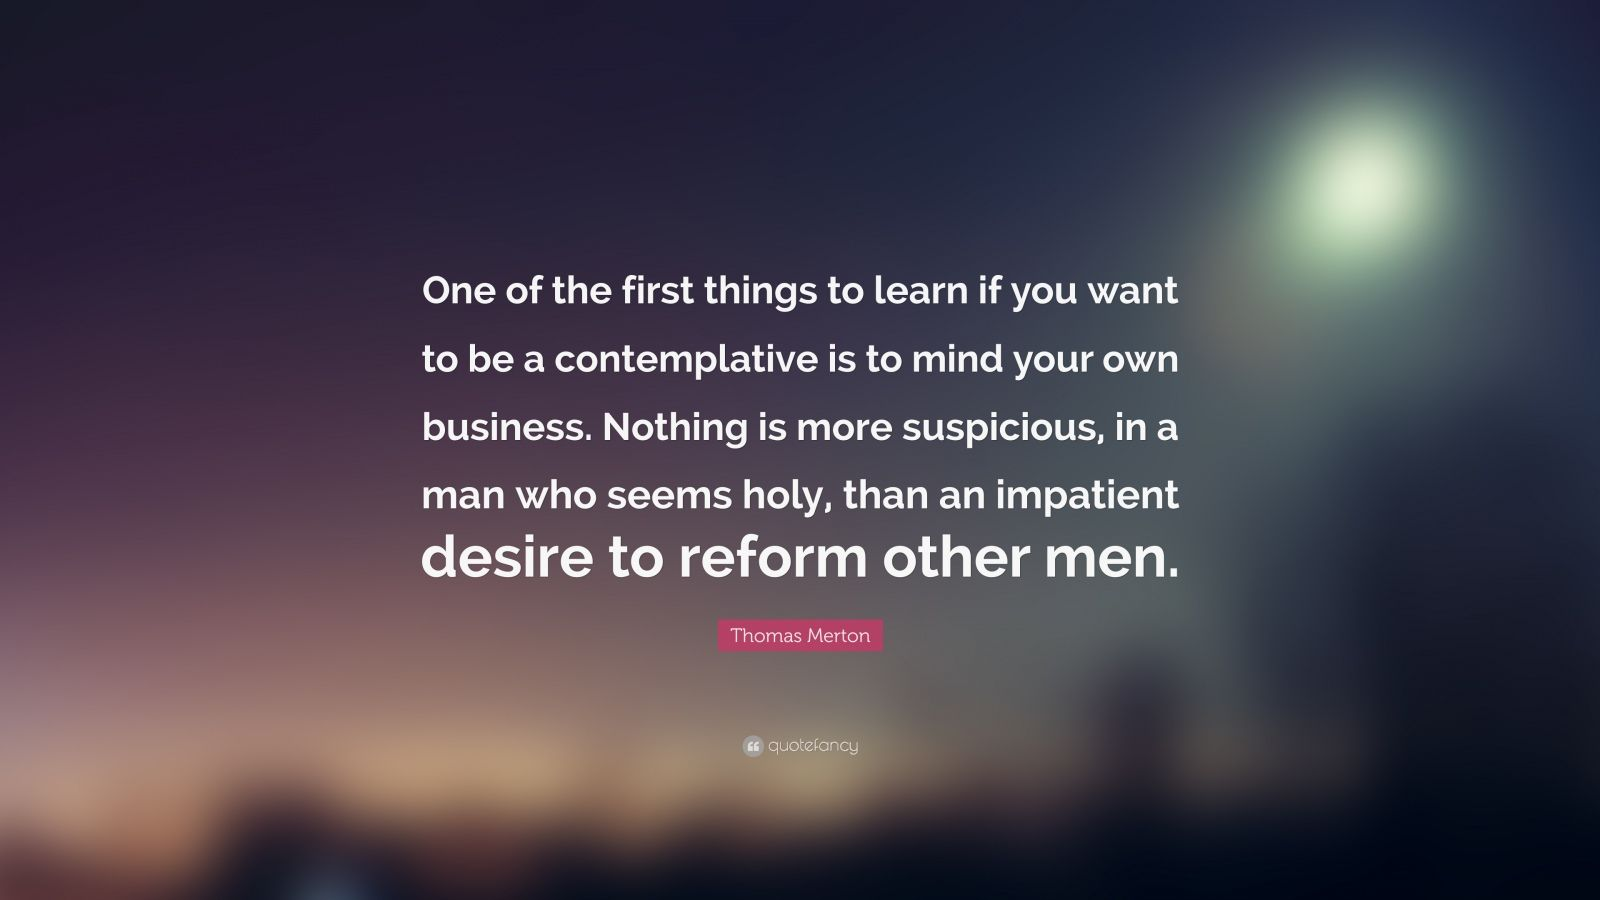 """Thomas Merton Quote: """"One of the first things to learn if you want to be a contemplative is to mind your own business. Nothing is more suspicious, in a man who seems holy, than an impatient desire to reform other men."""""""